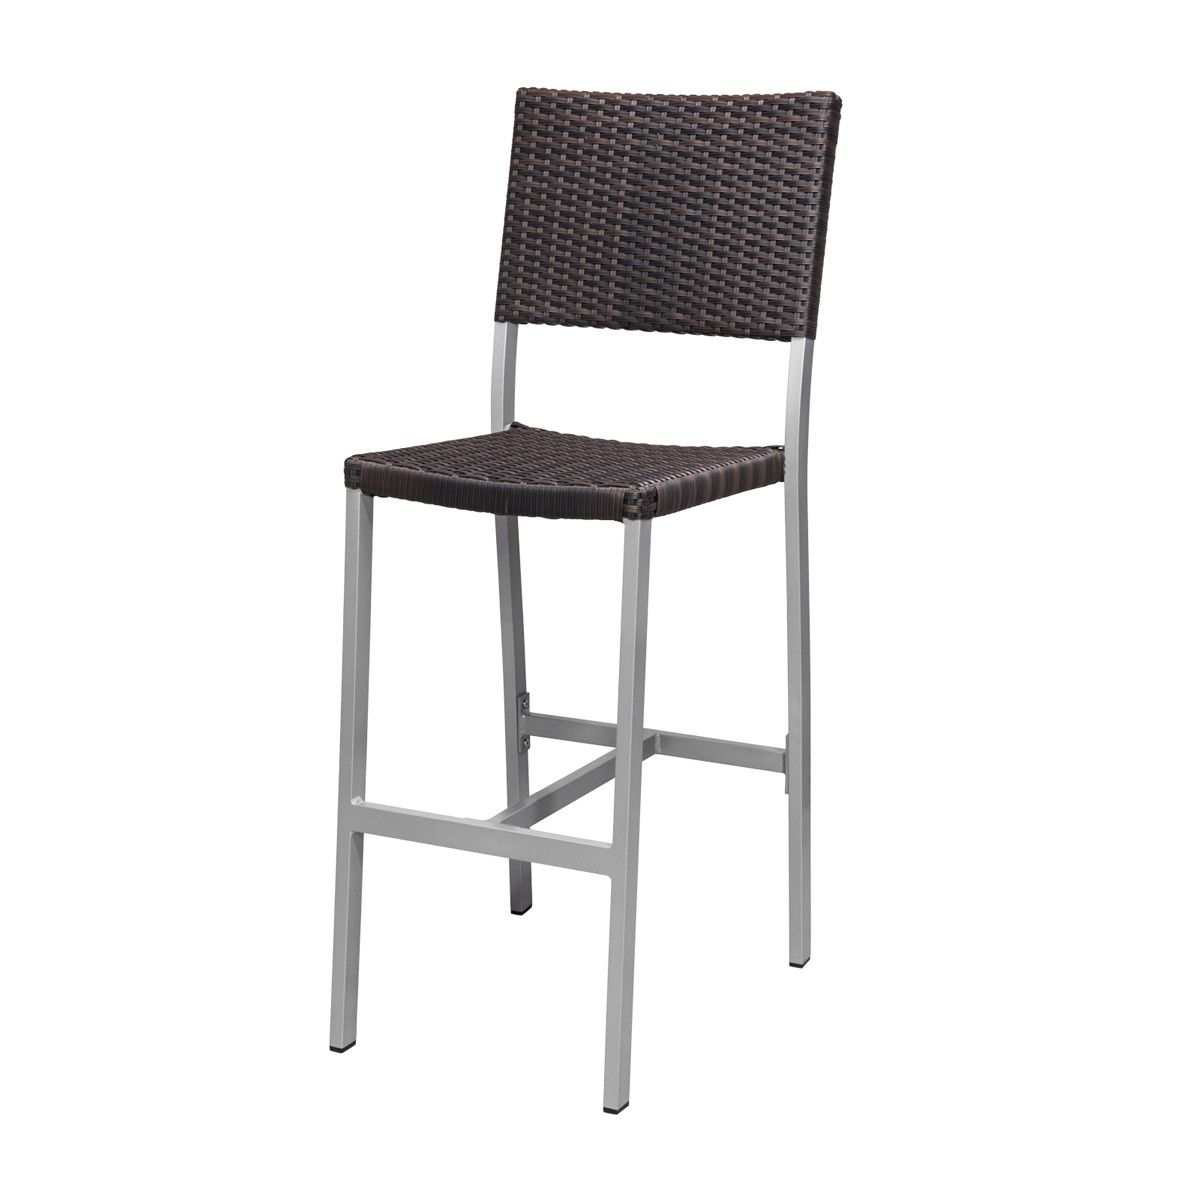 Groovy Fiji 30 Bar Stool Products Pinterest Patio Bar Stools Gmtry Best Dining Table And Chair Ideas Images Gmtryco